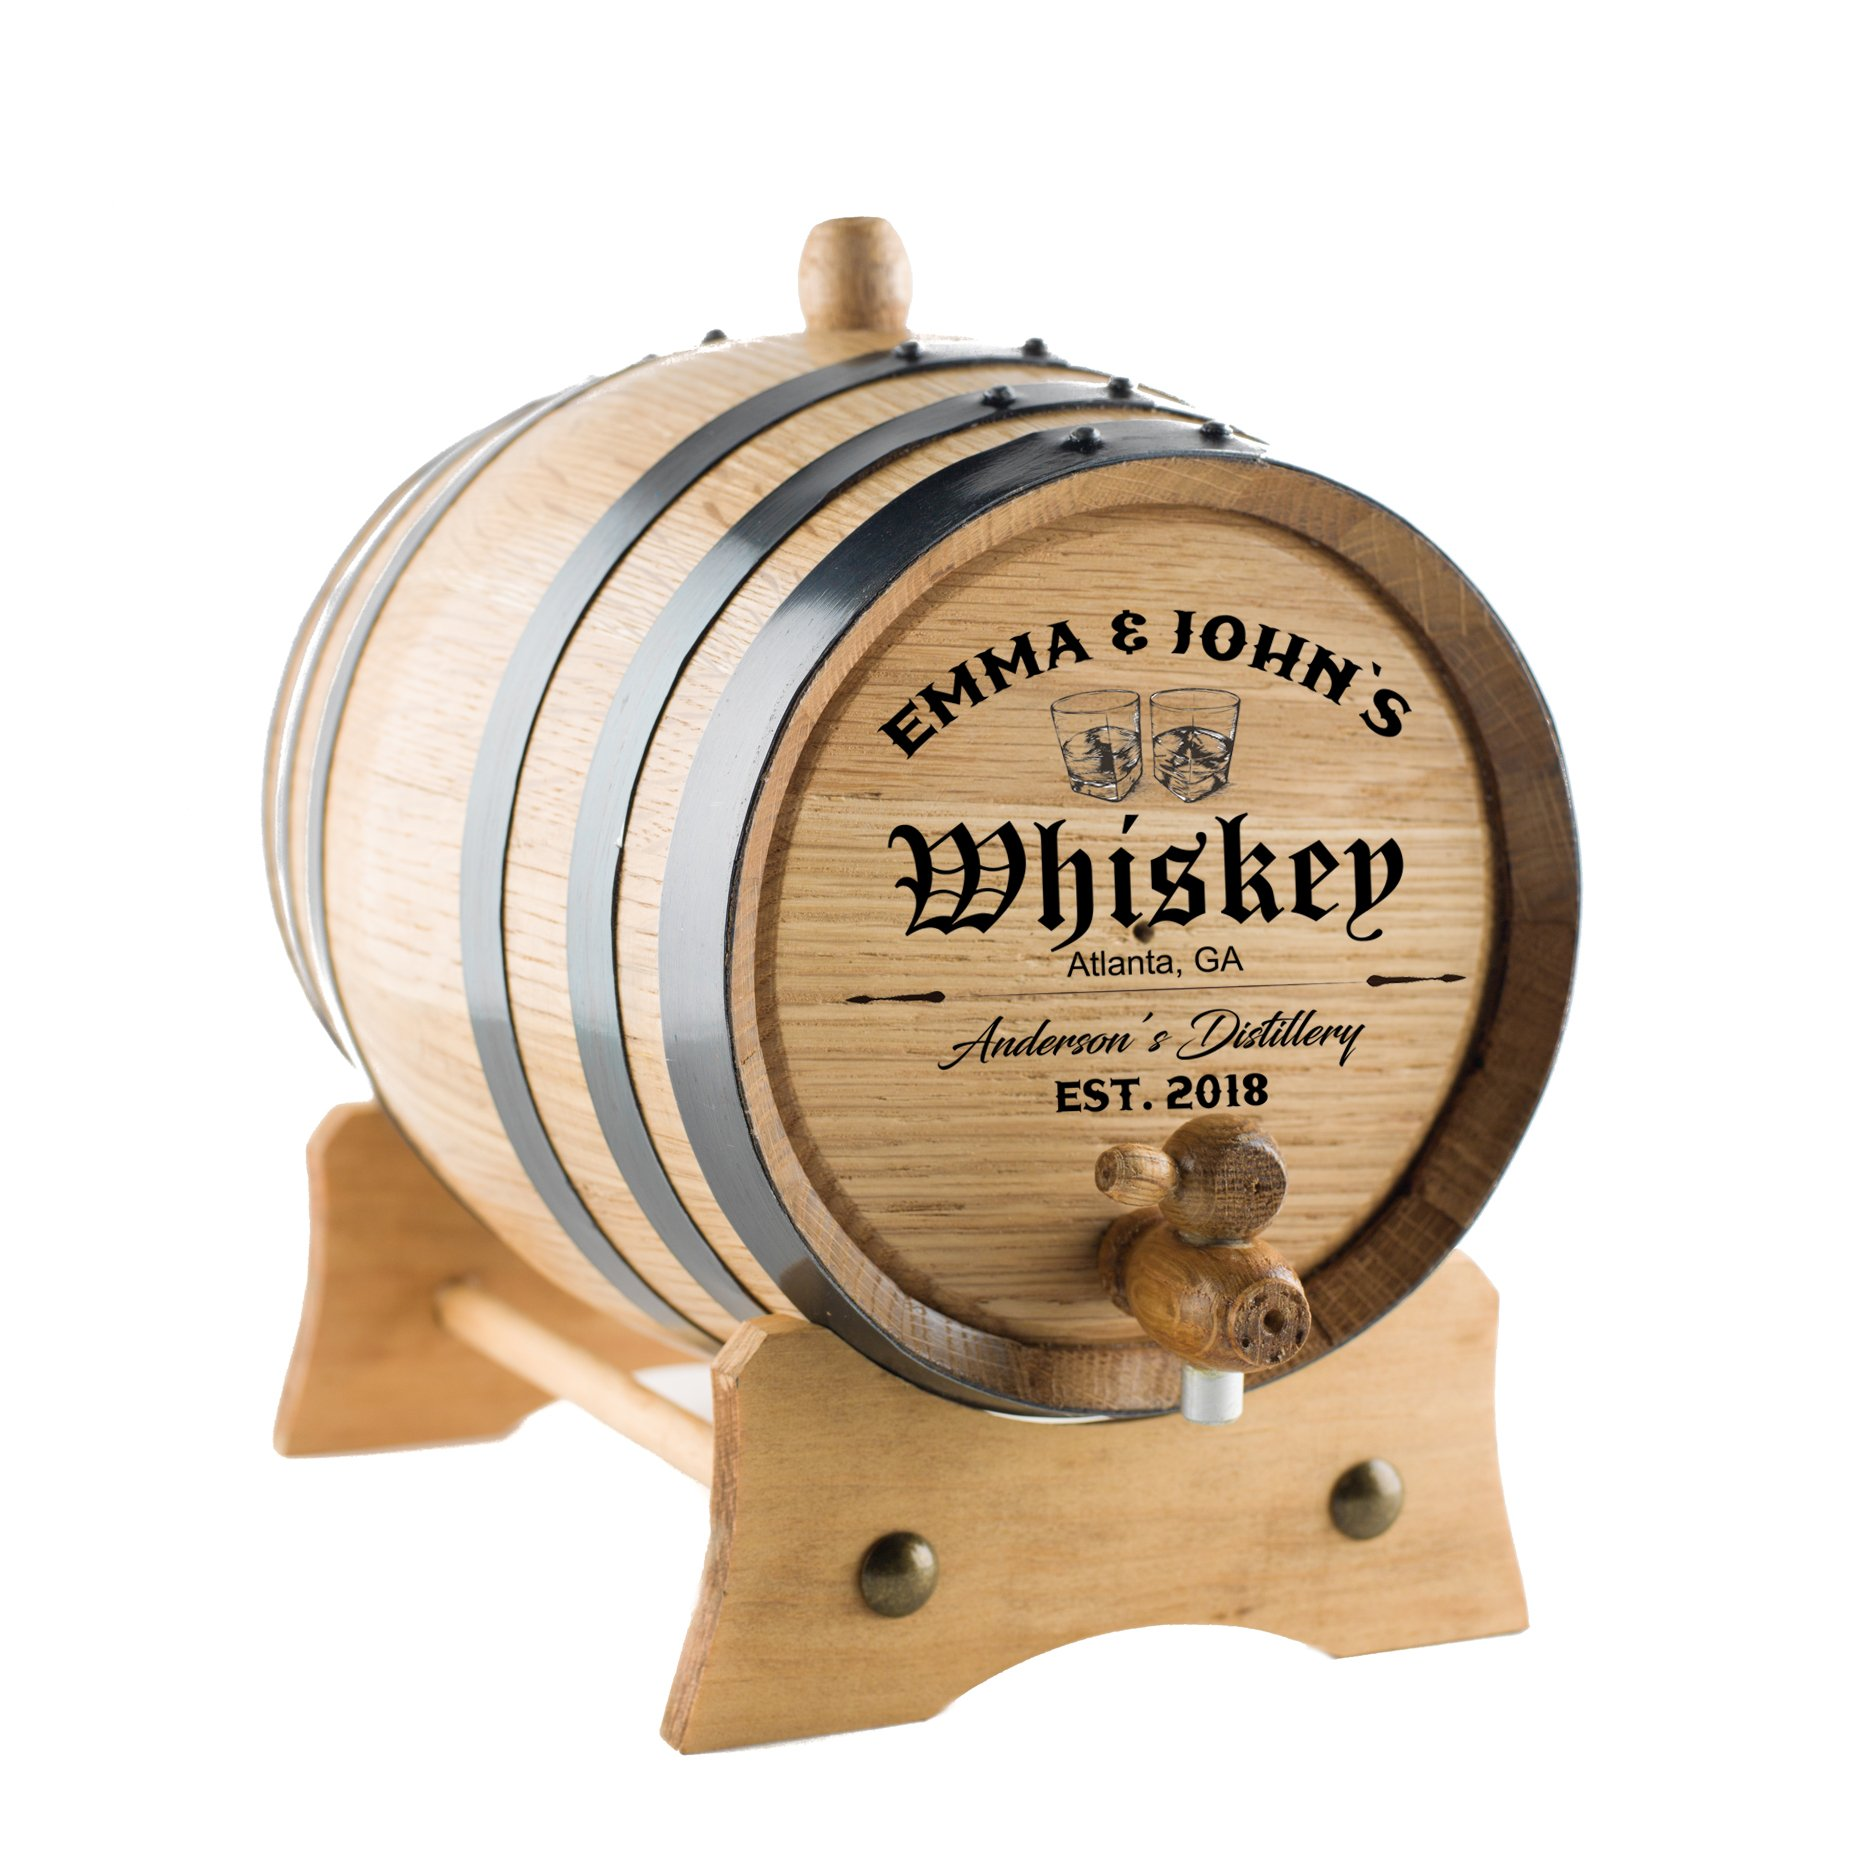 Personalized - Custom Engraved American Premium Oak Aging Barrel - Whiskey Barrel - Age your own Whiskey, Beer, Wine, Bourbon, Tequila, Rum, Hot Sauce & More | Barrel Aged (5 Liters)